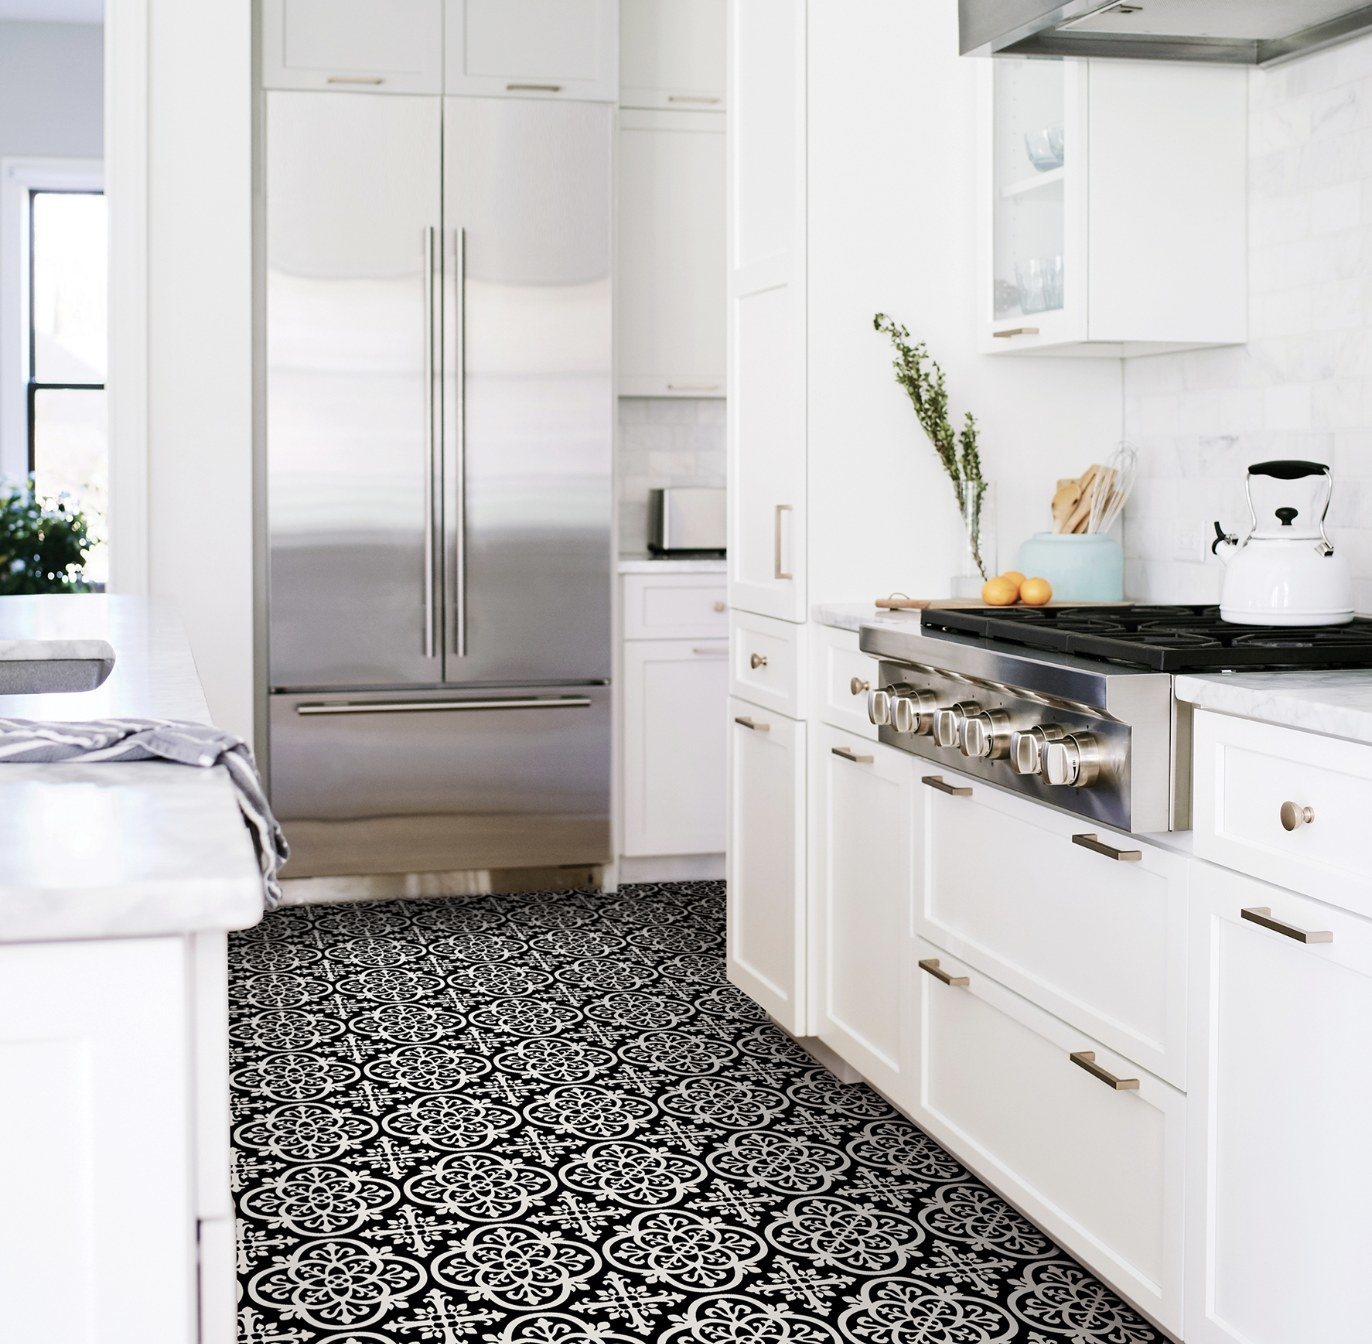 Black and white gothic-style floor tiles in a kitchen